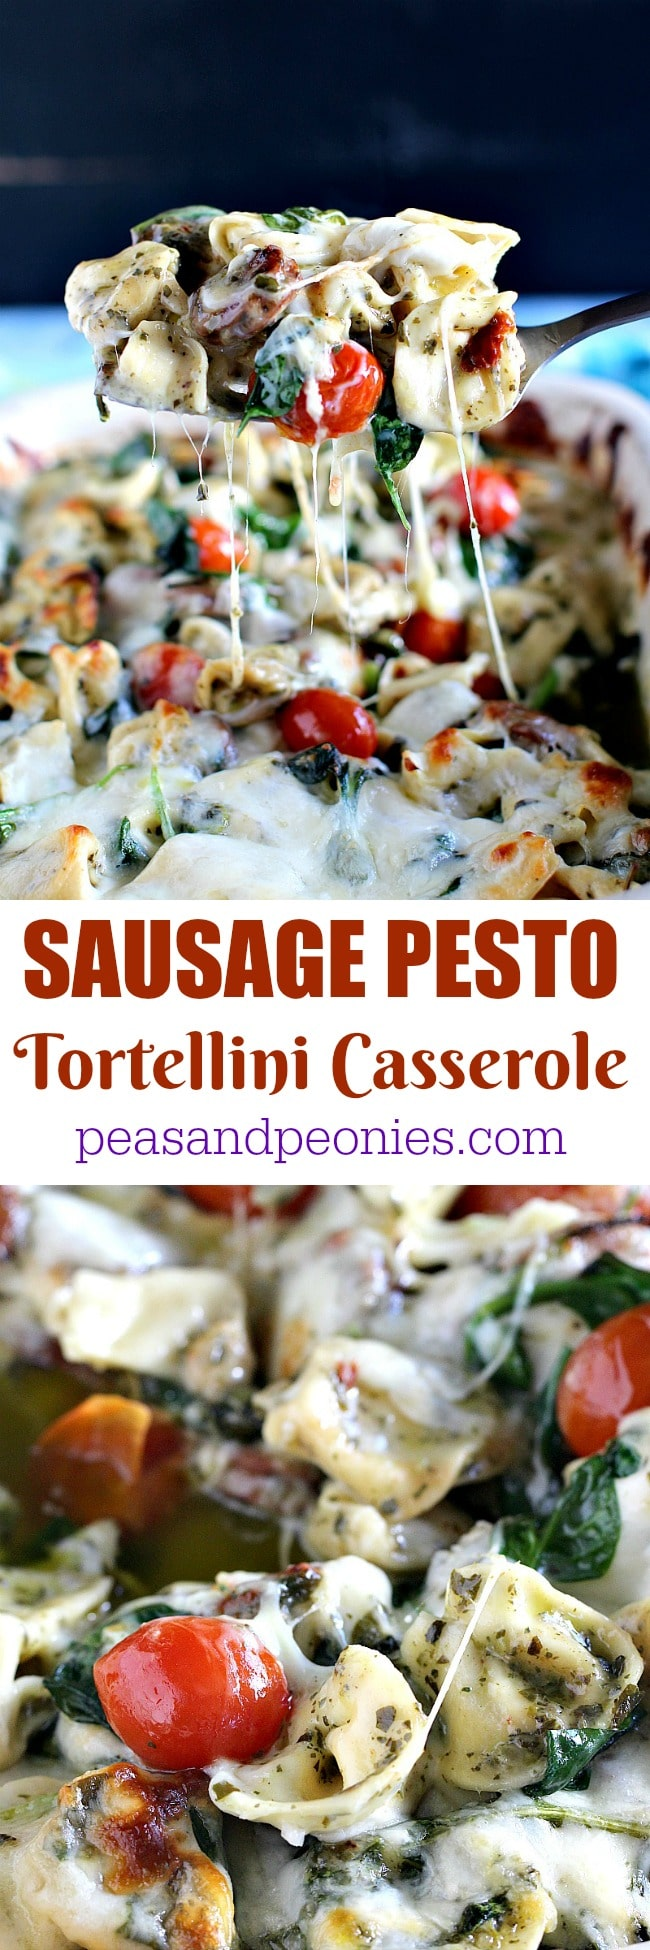 6 Ingredients only, Sausage Pesto Tortellini Casserole made with fresh ingredients is perfect for delicious and quick weeknight dinners.